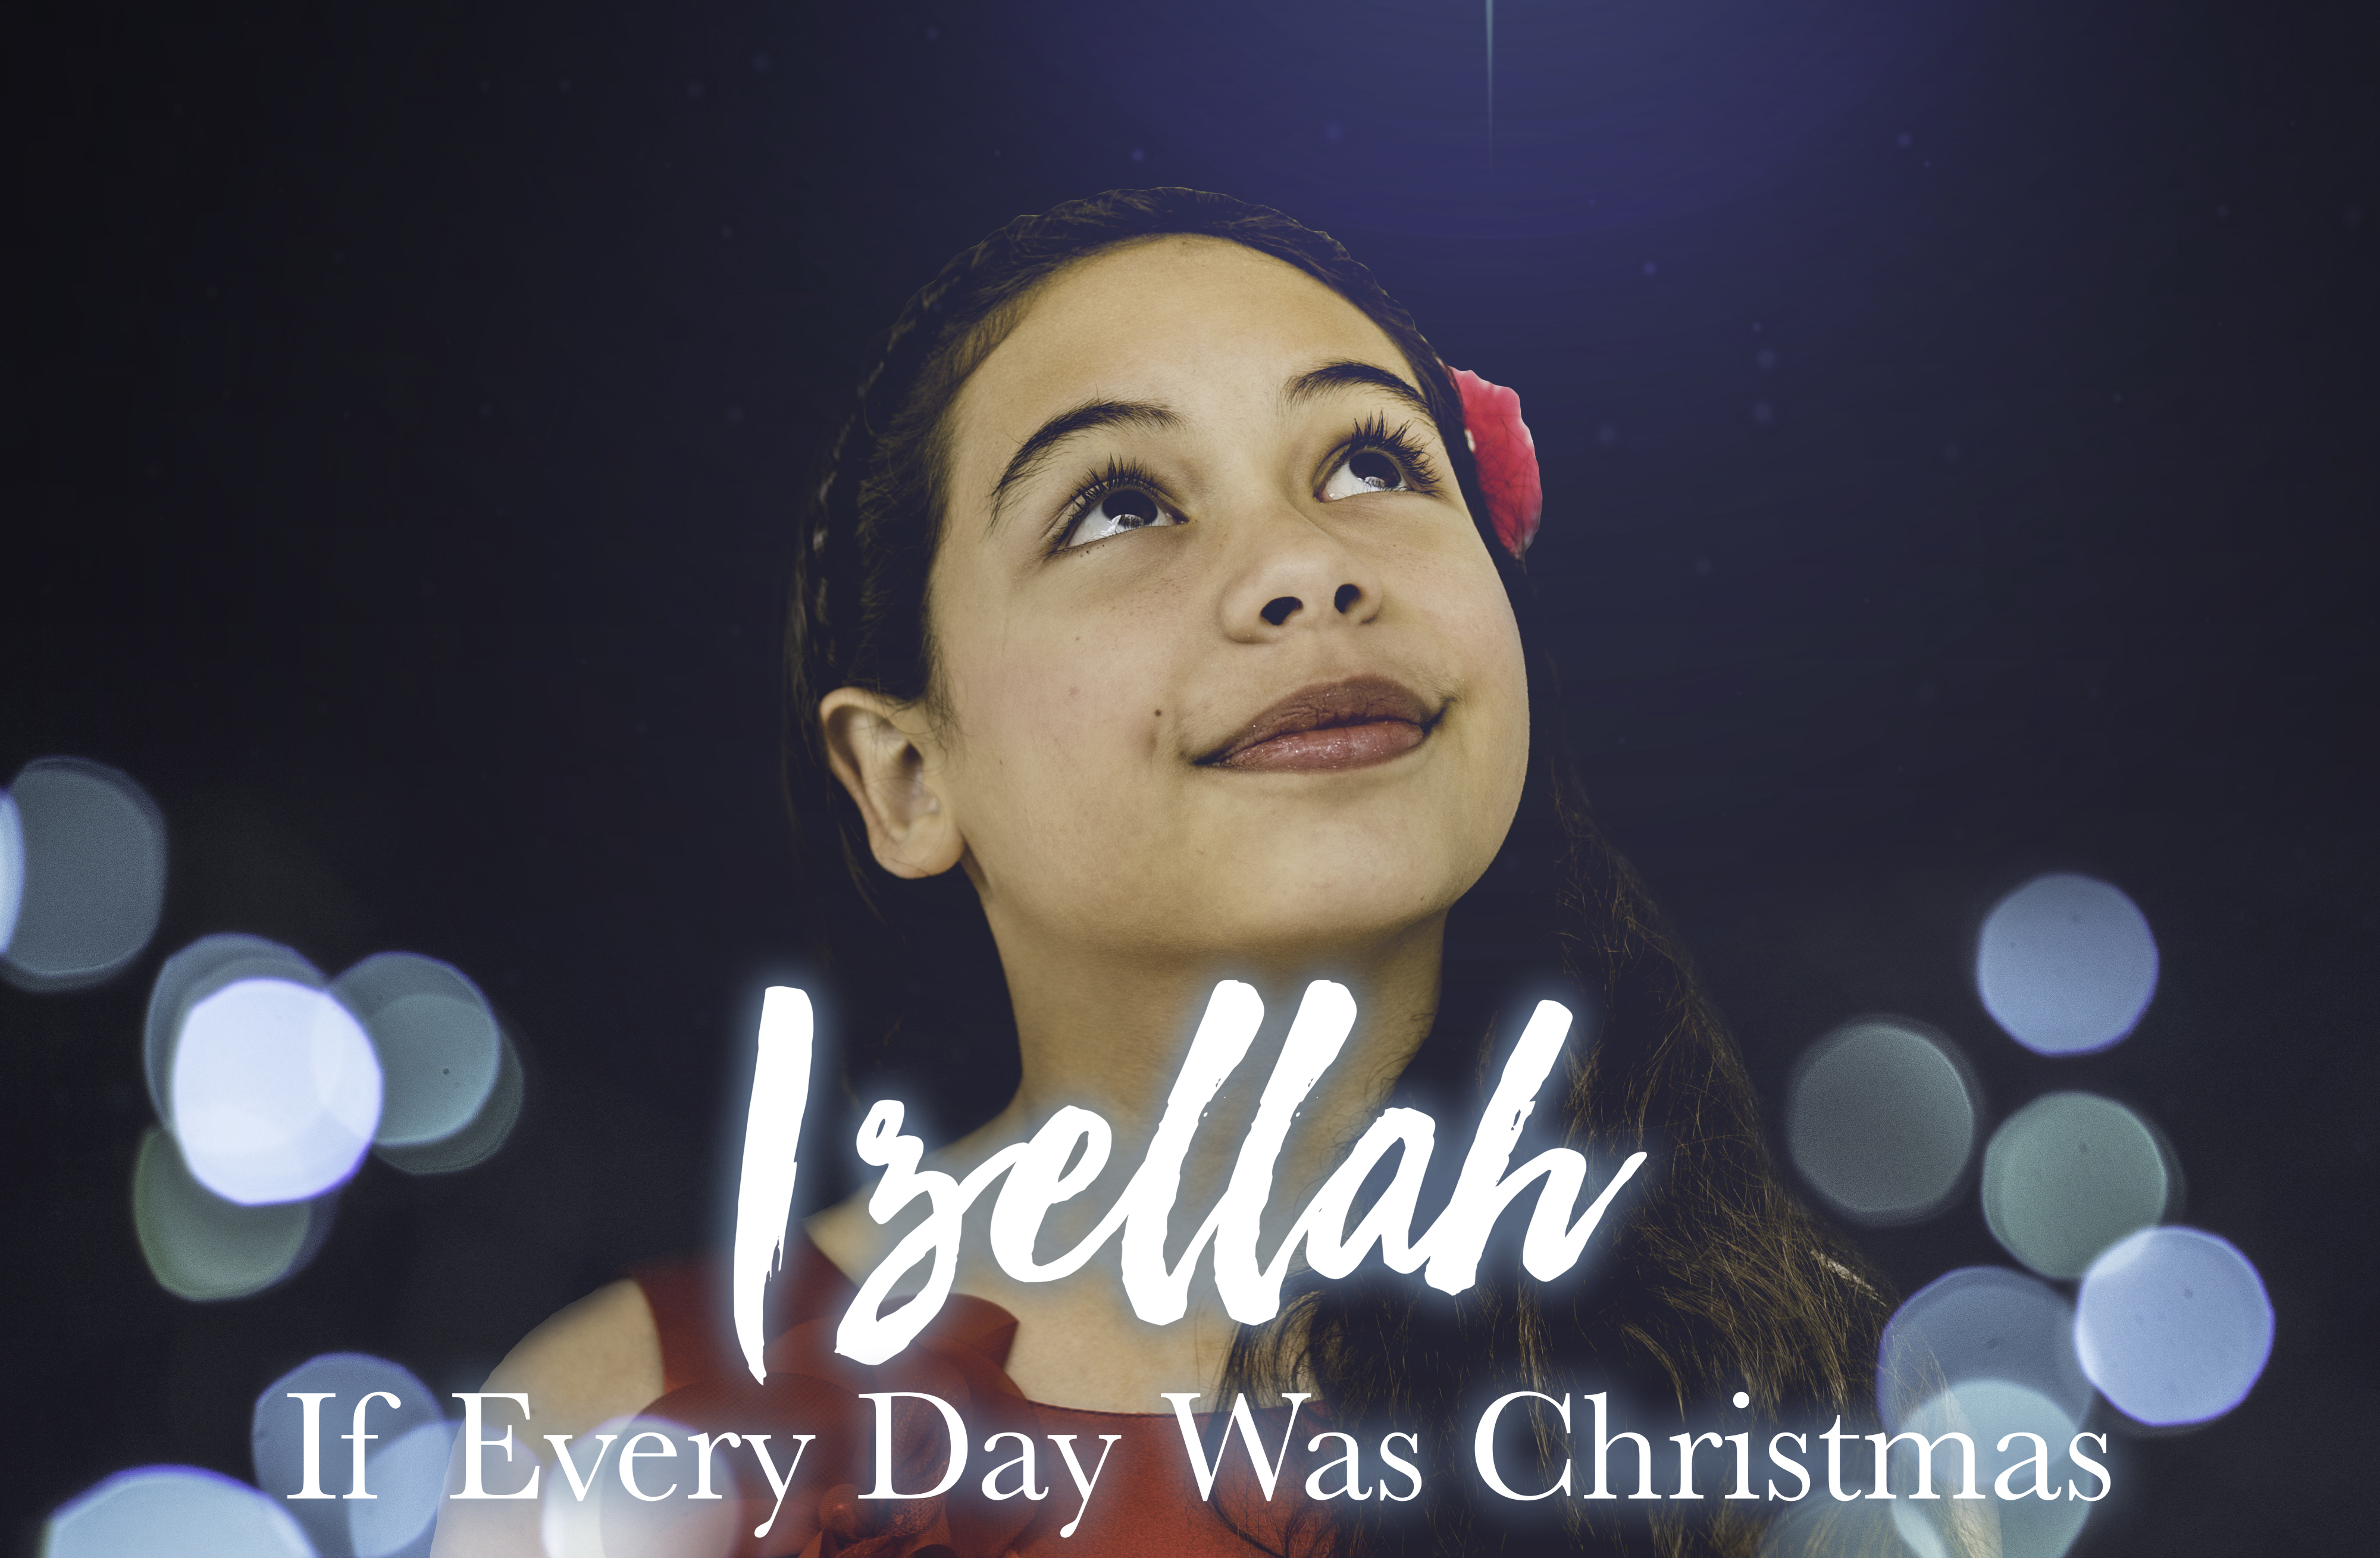 IF EVERYDAY WAS CHRISTMAS FOR IZELLAH